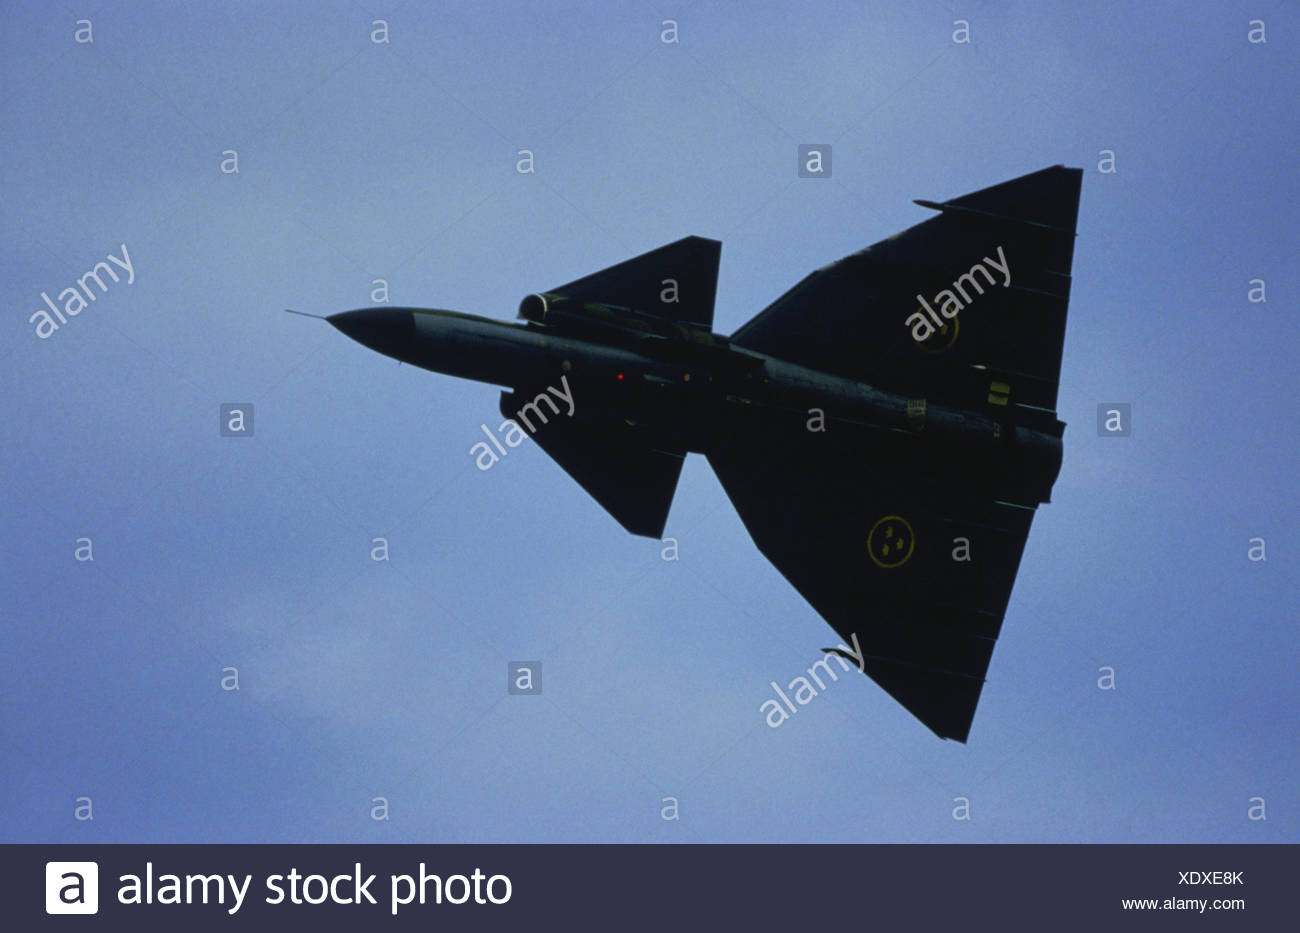 military, Sweden, aircraft airforce jet Saab J-37 'Viggen', Additional-Rights-Clearences-NA - Stock Image